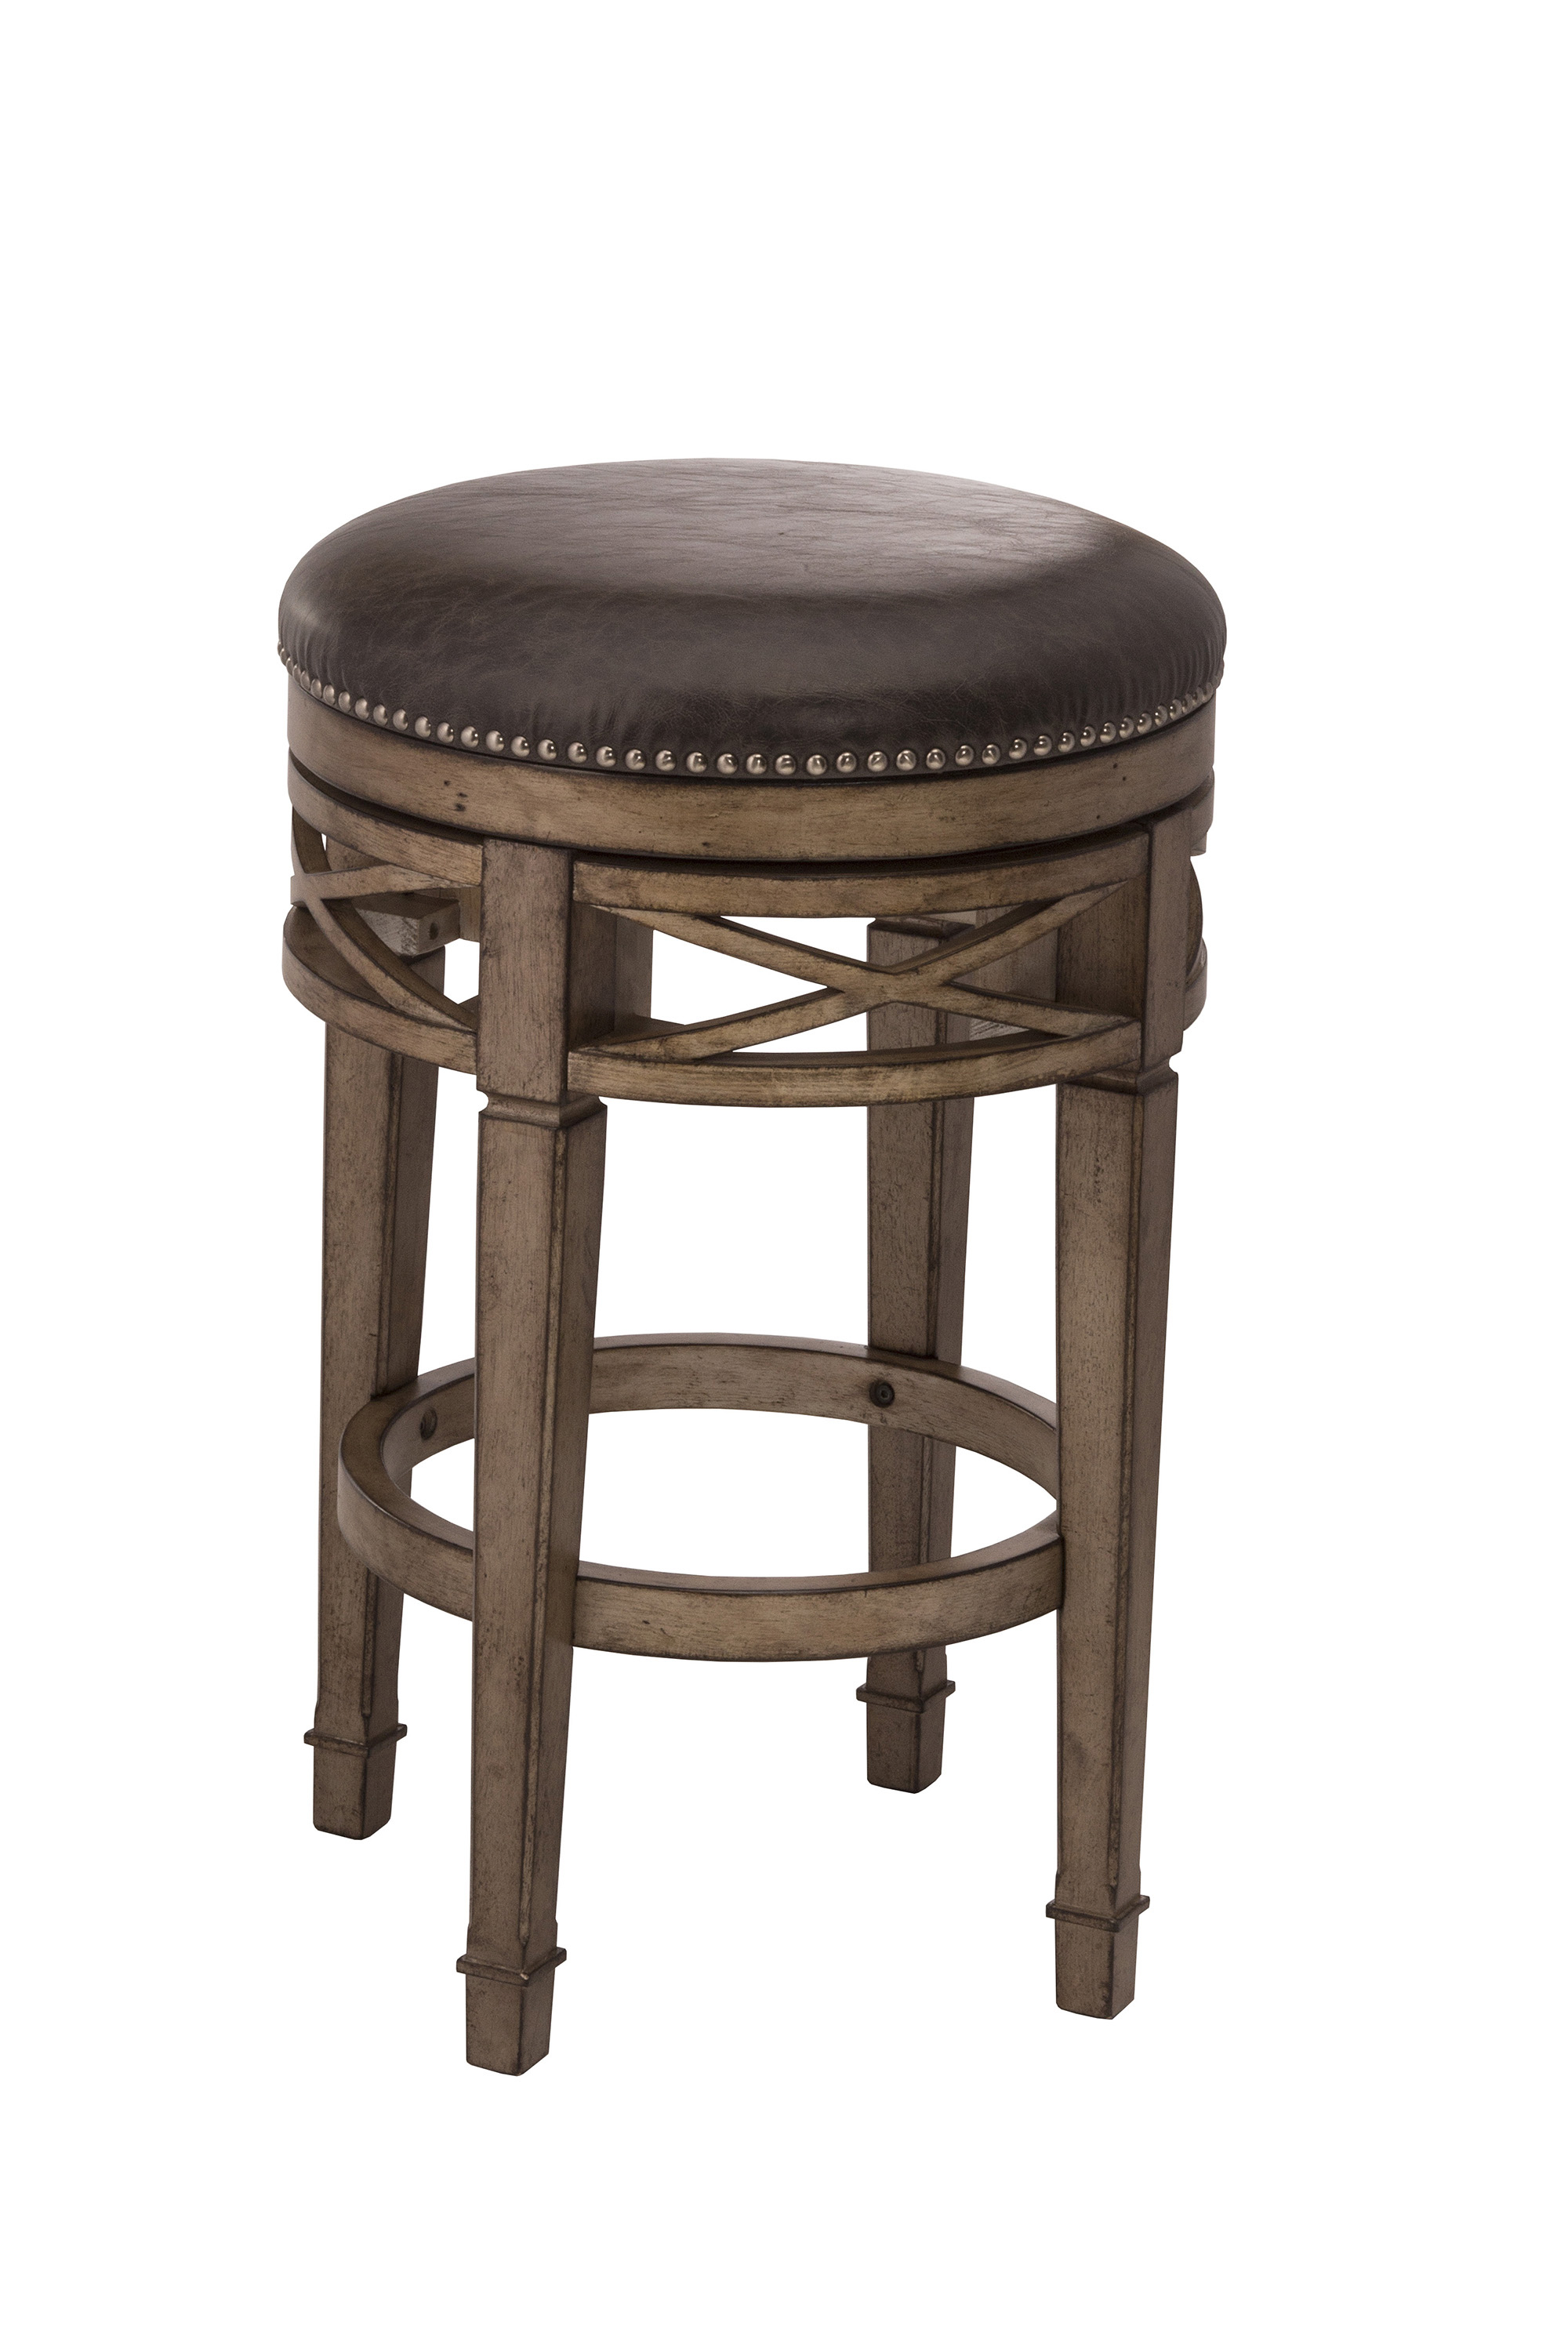 Hillsdale Backless Bar Stools Backless Swivel Counter Stool - Item Number: 5609-826